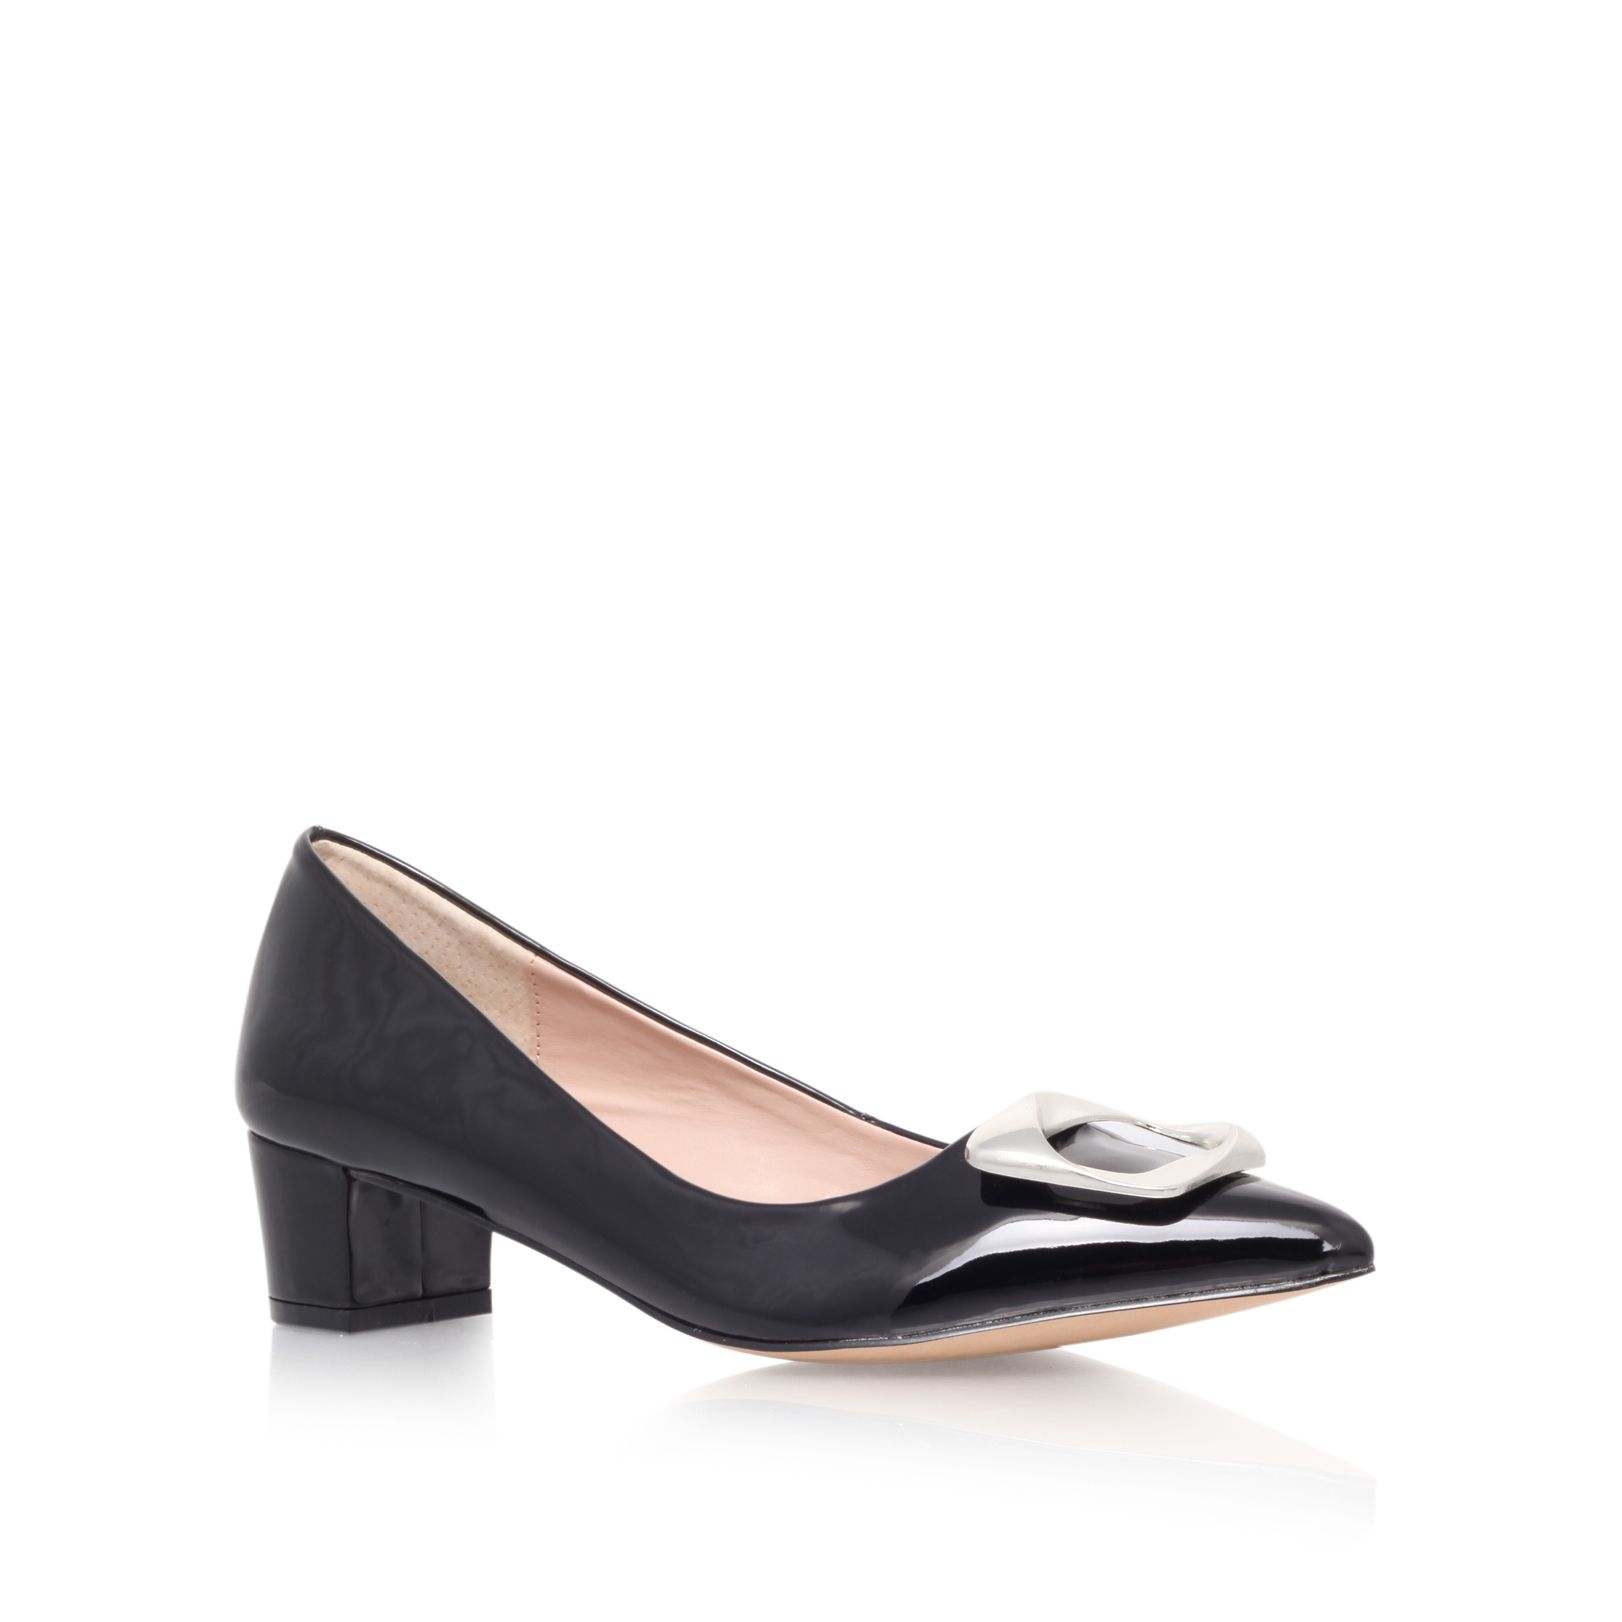 Alpha leather pointed toe block heel court shoes